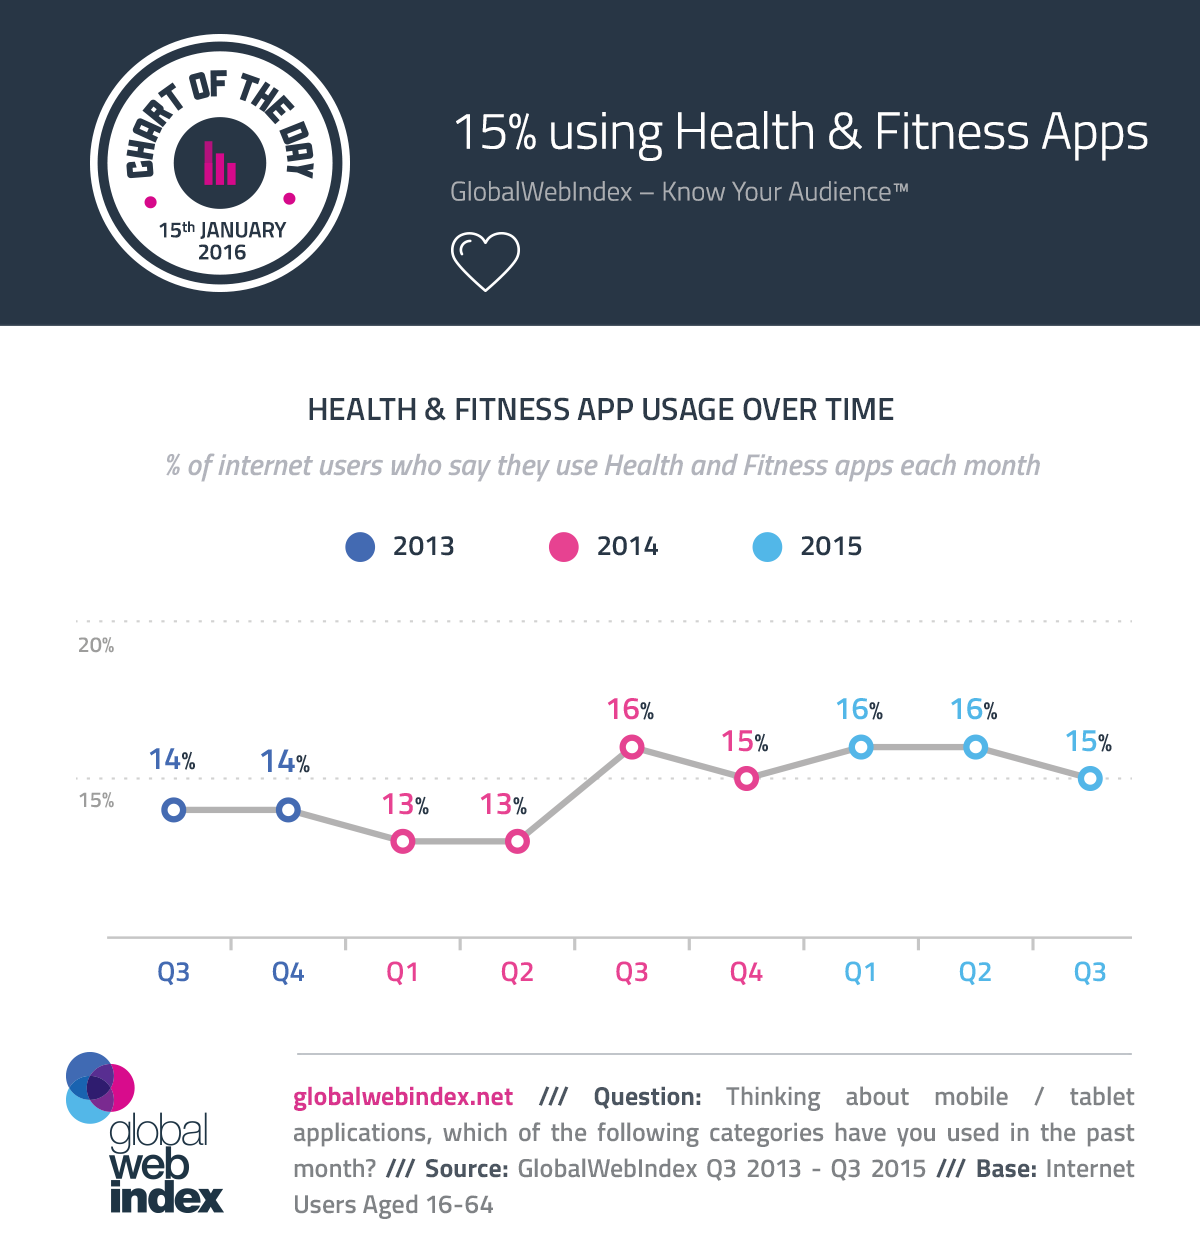 15% using Health & Fitness Apps